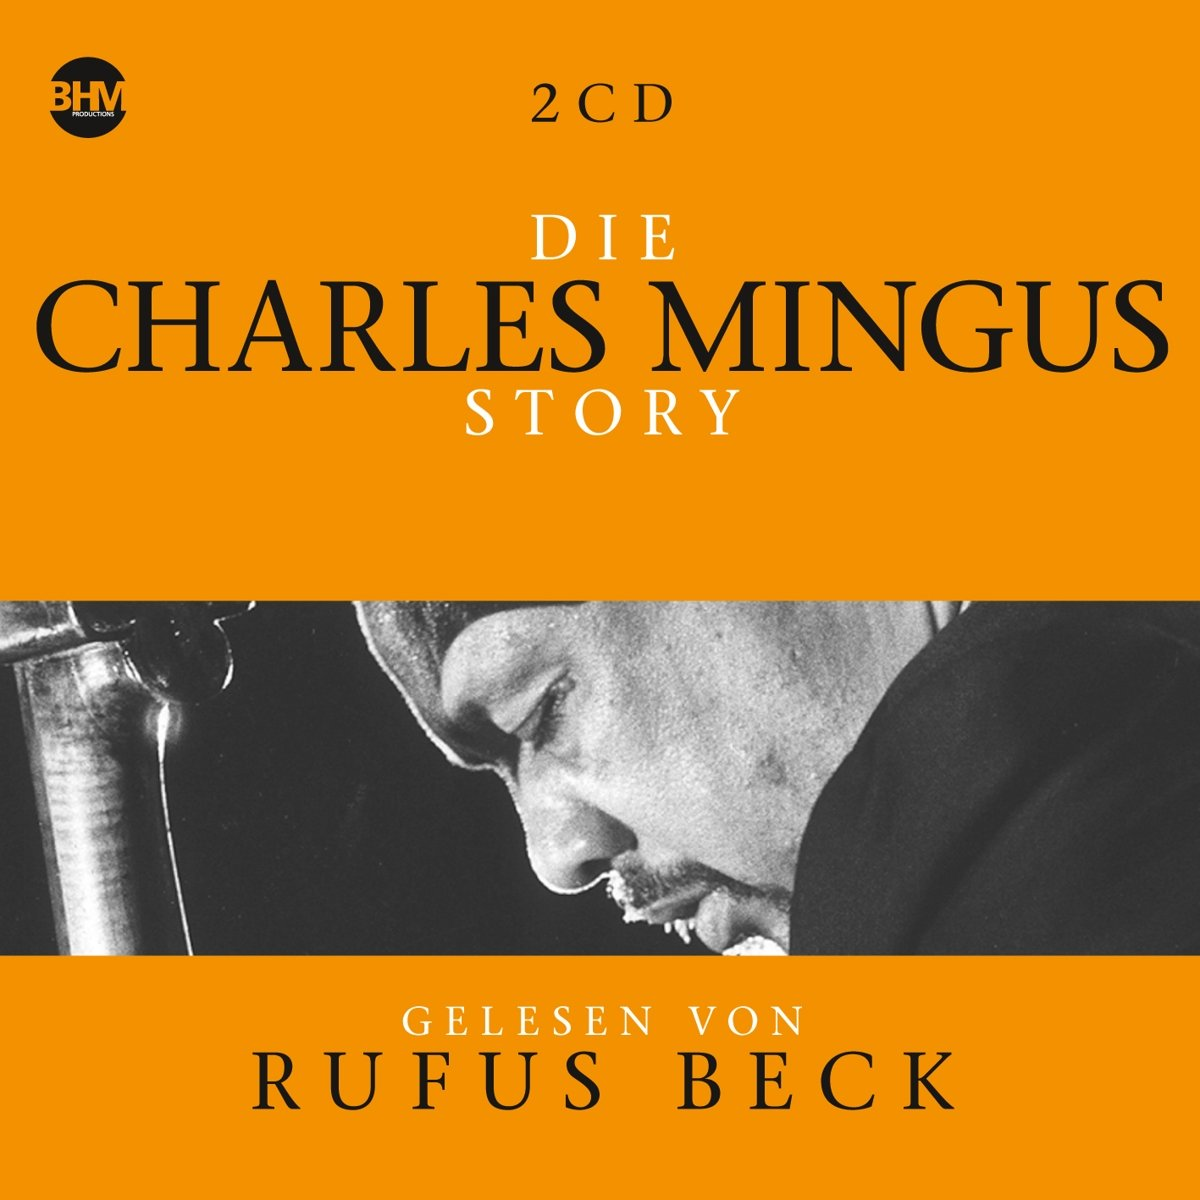 Фото - Charles Mingus, Beck Rufus. Die Charles Mingus Story. Musik (5 CD) charles mingus charles mingus the black saint and the sinner lady